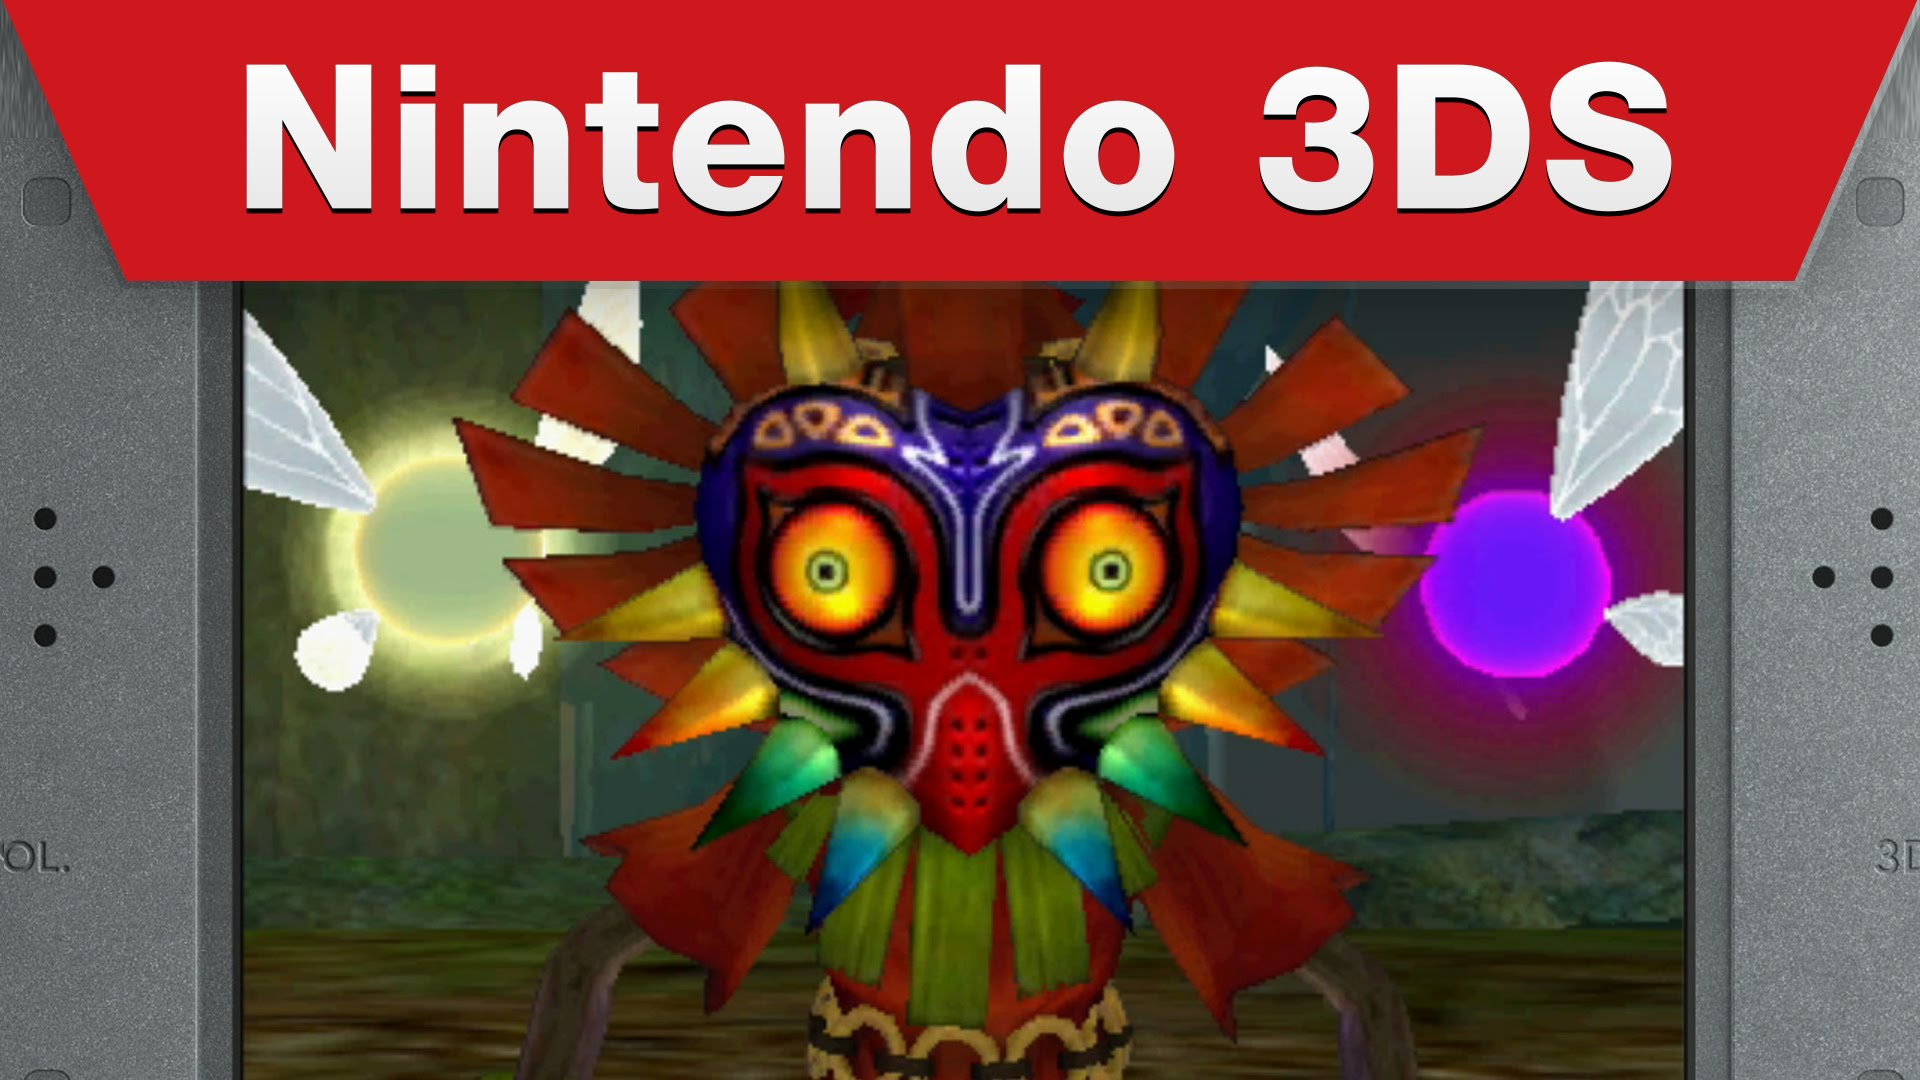 Hyrule Warriors Legends - Skull Kid Trailer